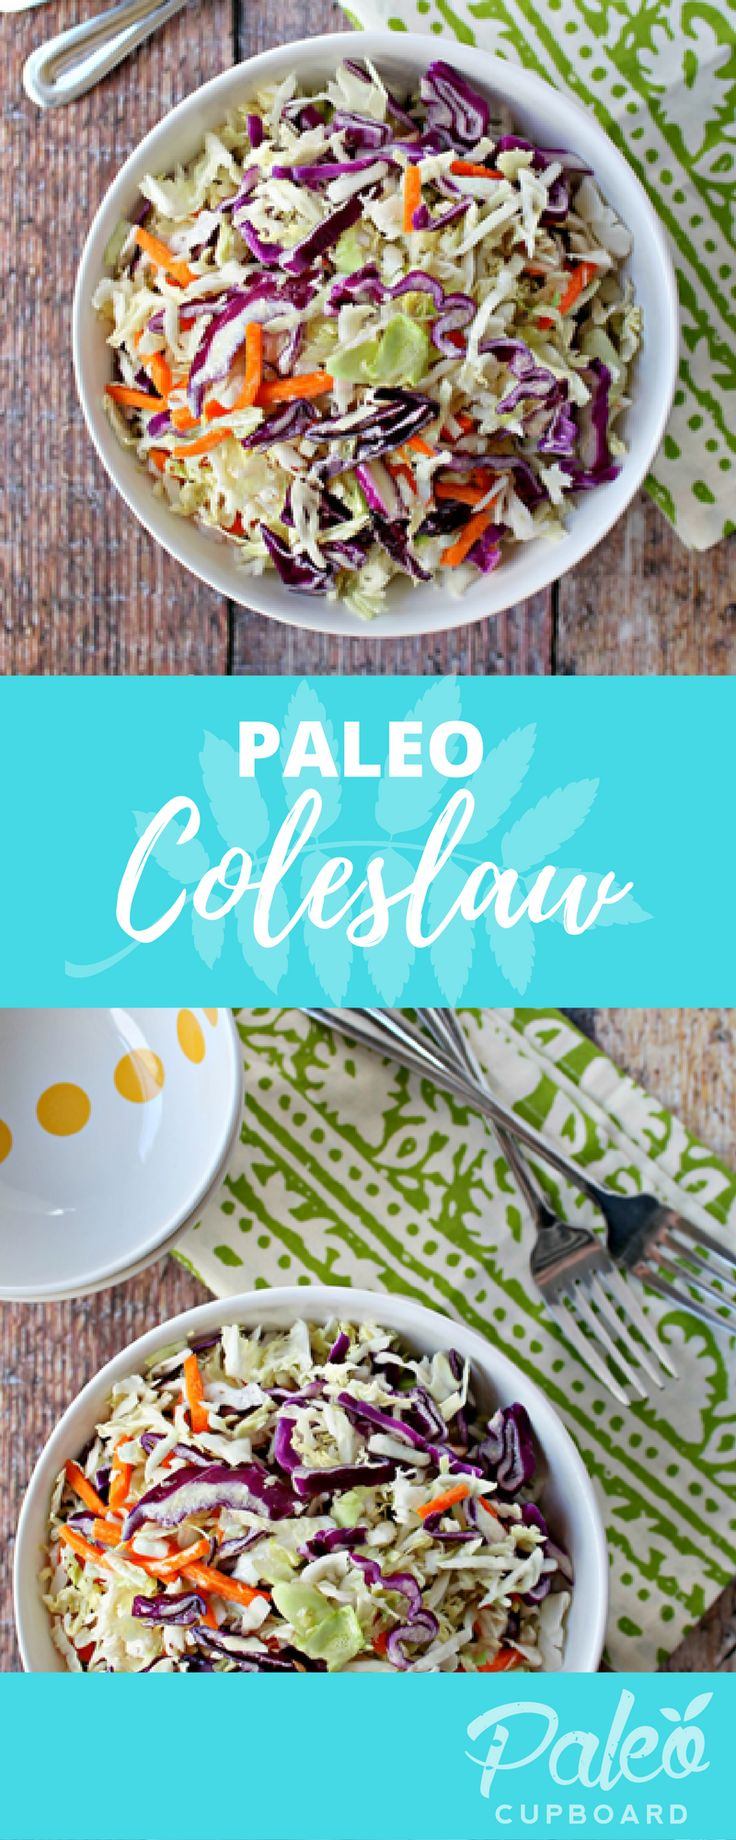 Easy Paleo Coleslaw recipe - a great side dish for any protein!